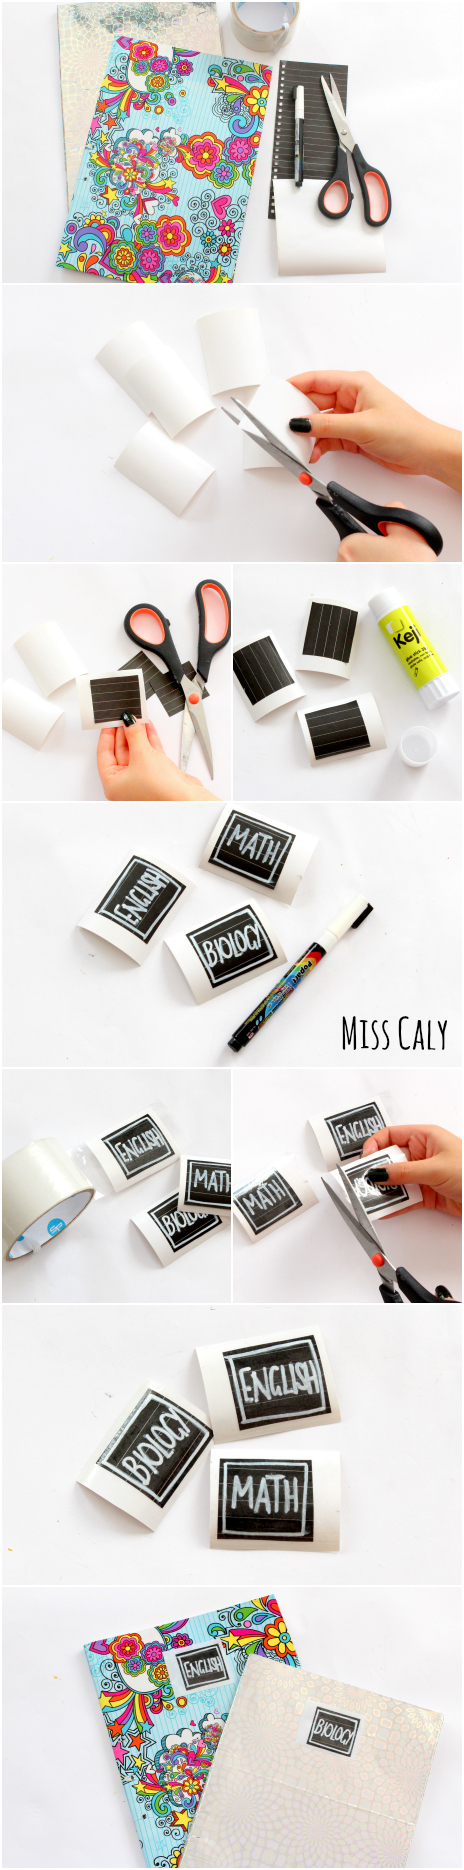 5 Minute DIY School Book Labels - Miss Caly